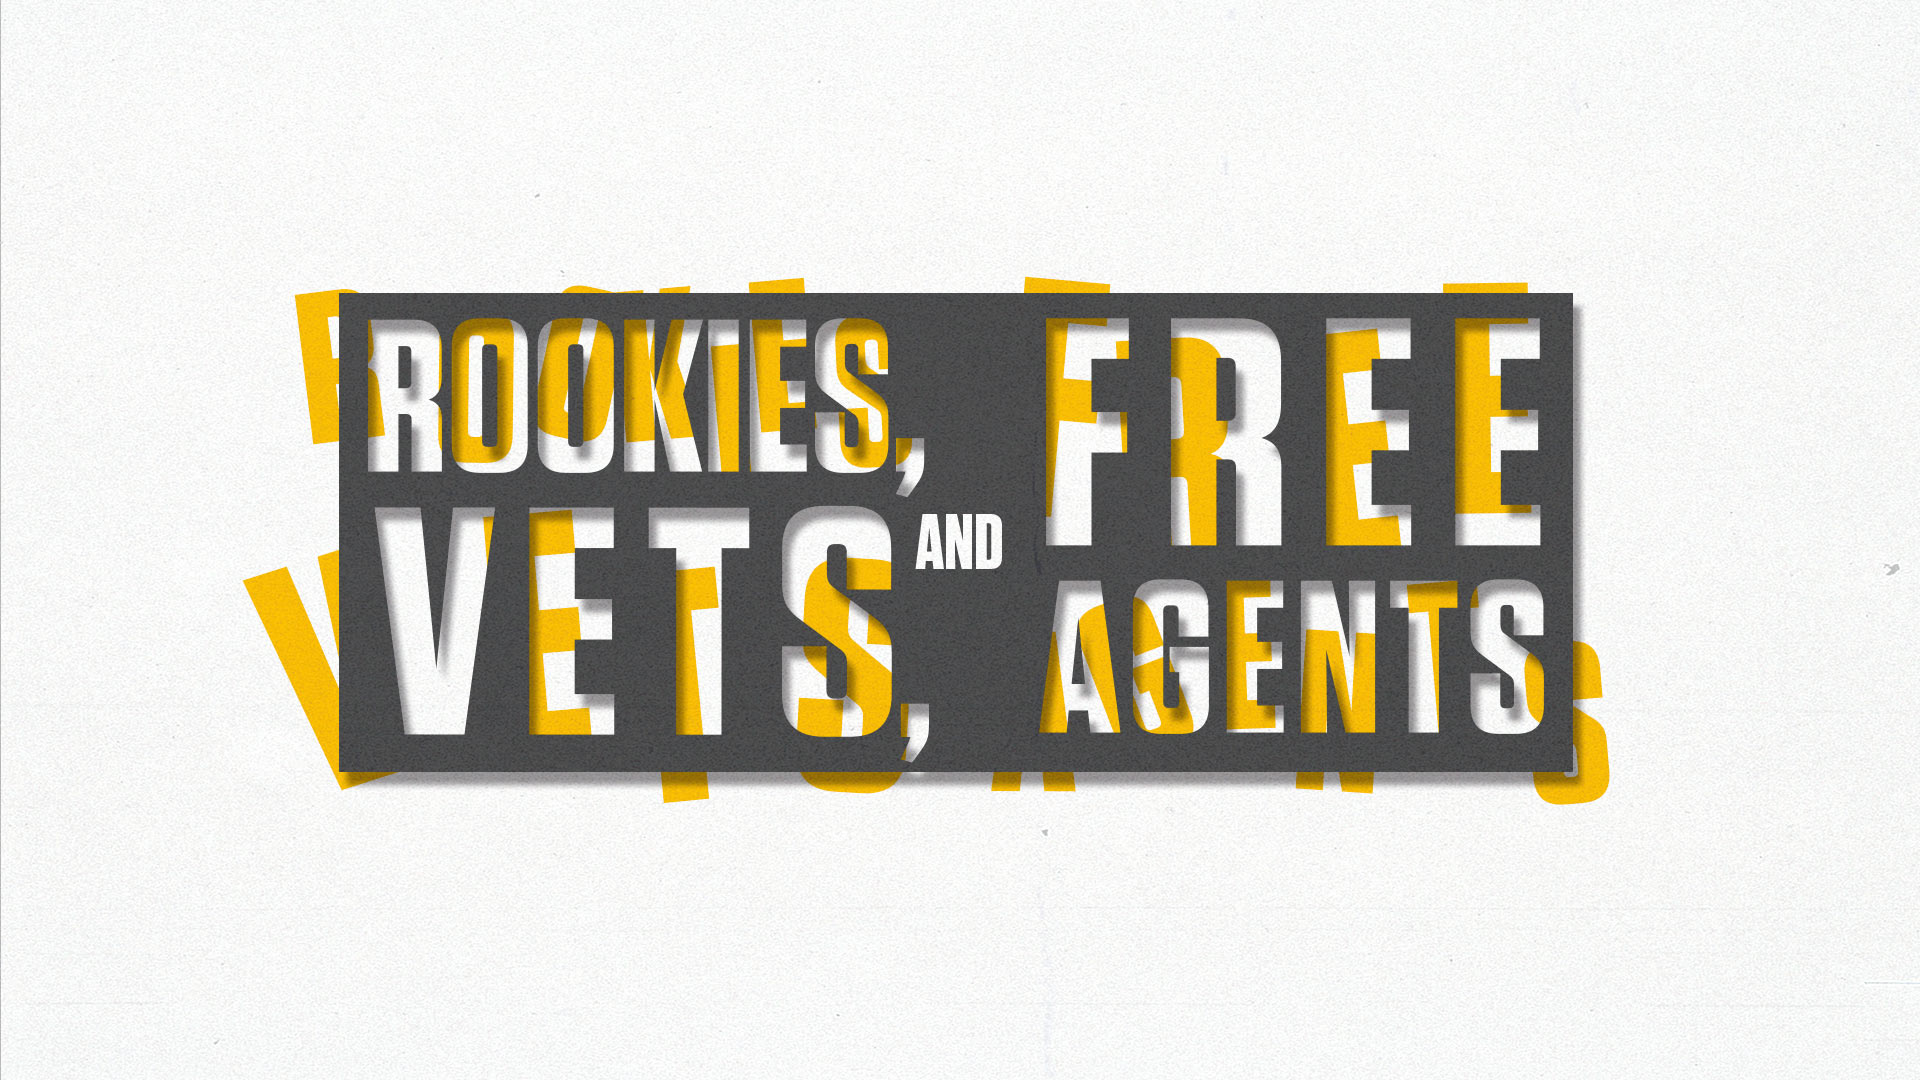 Rookies, Vets, and Free Agents